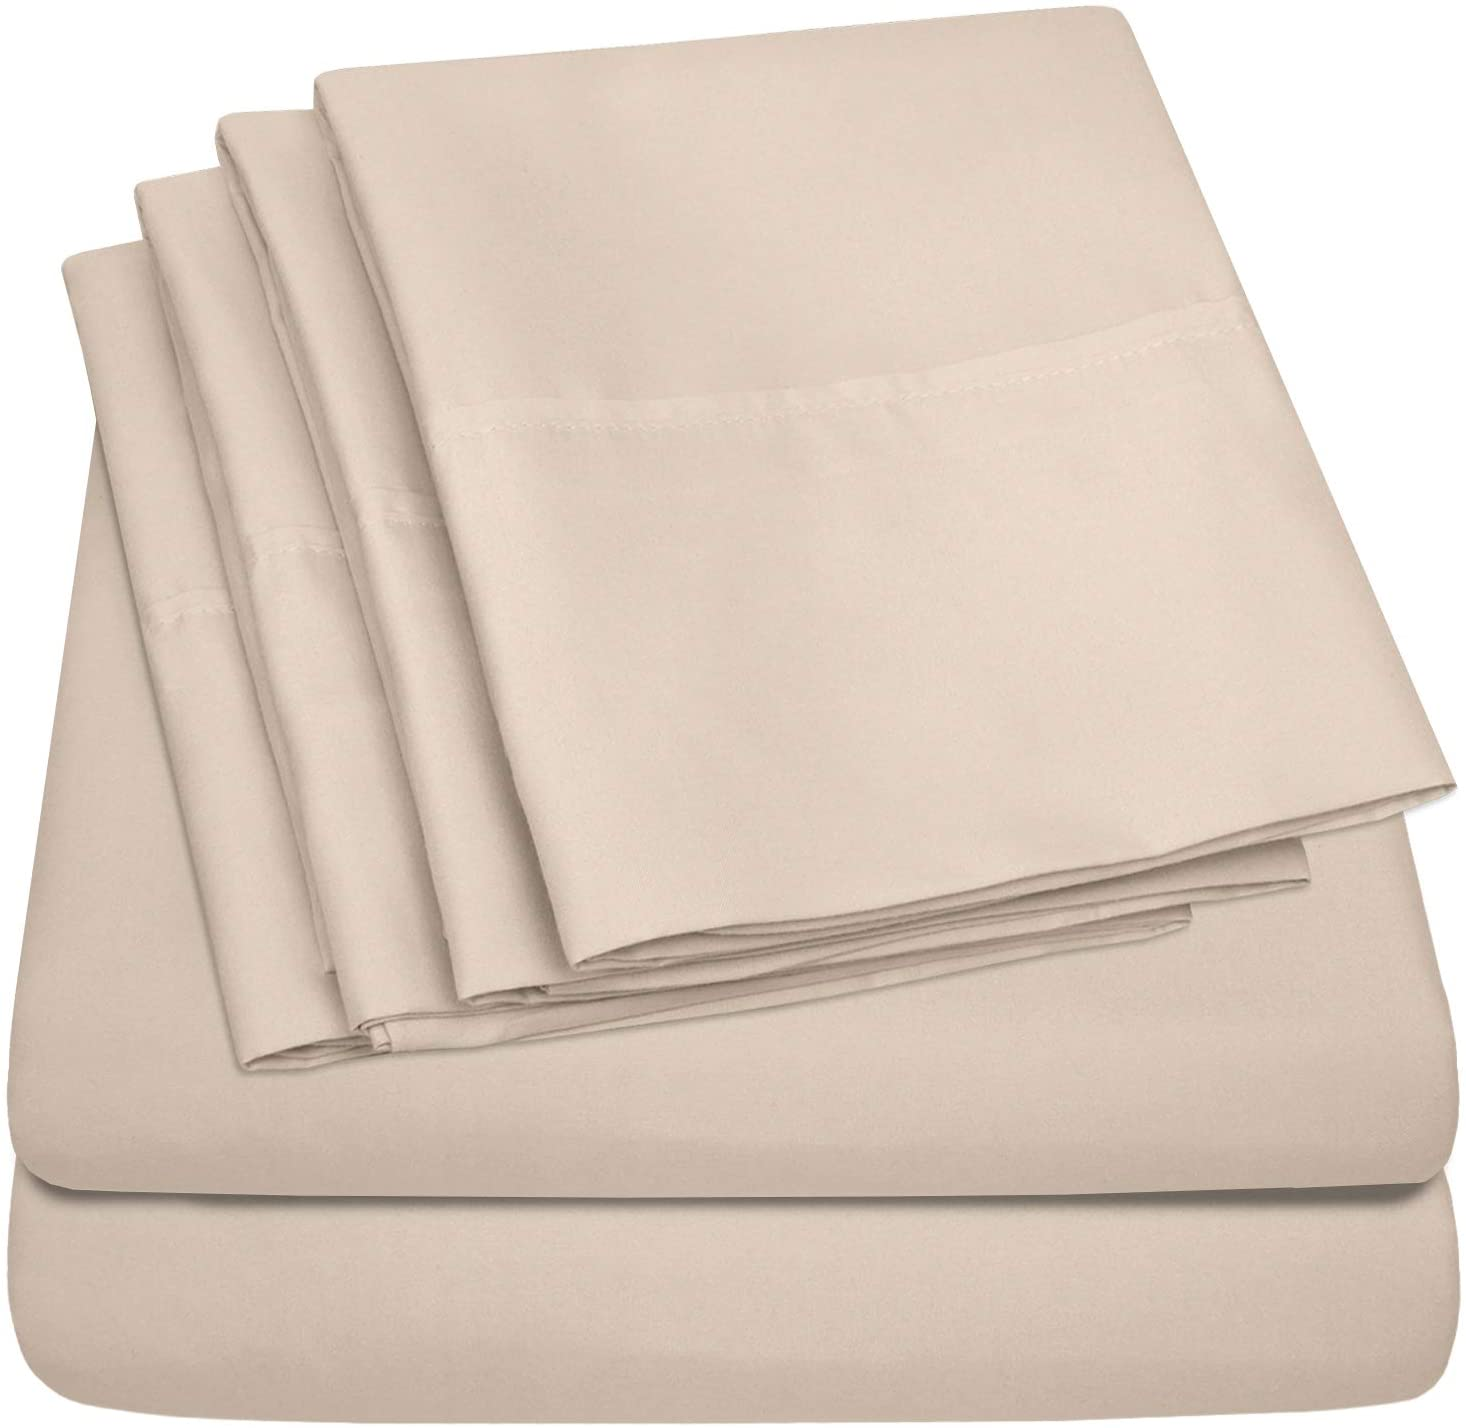 Sweet Home Collection 6 Piece Bed Fine 40% OFF Cheap Sale Count 1500 Thread El Paso Mall Sheets